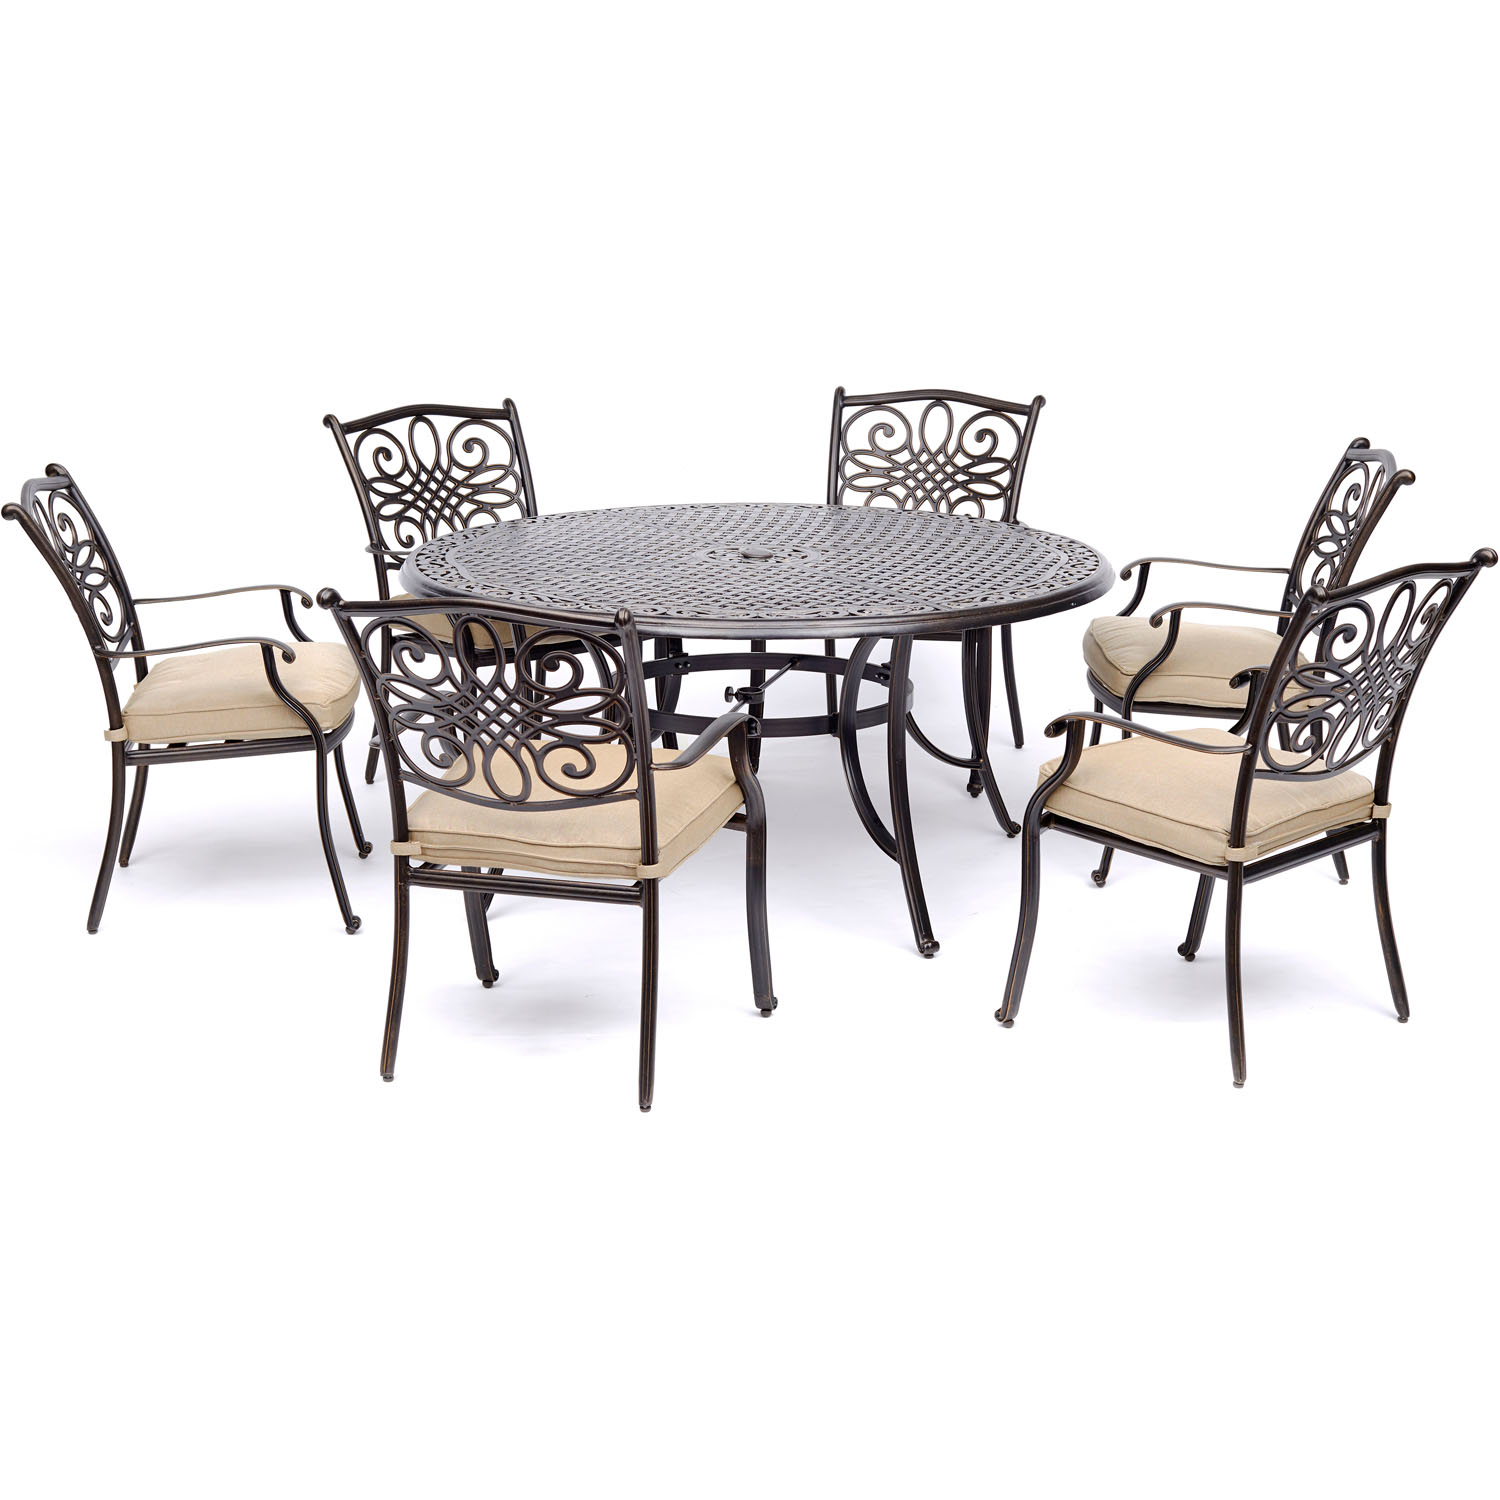 Hanover Traditions 7-Piece Outdoor Dining Set with Round Cast-Top Table and 6 Stationary Chairs